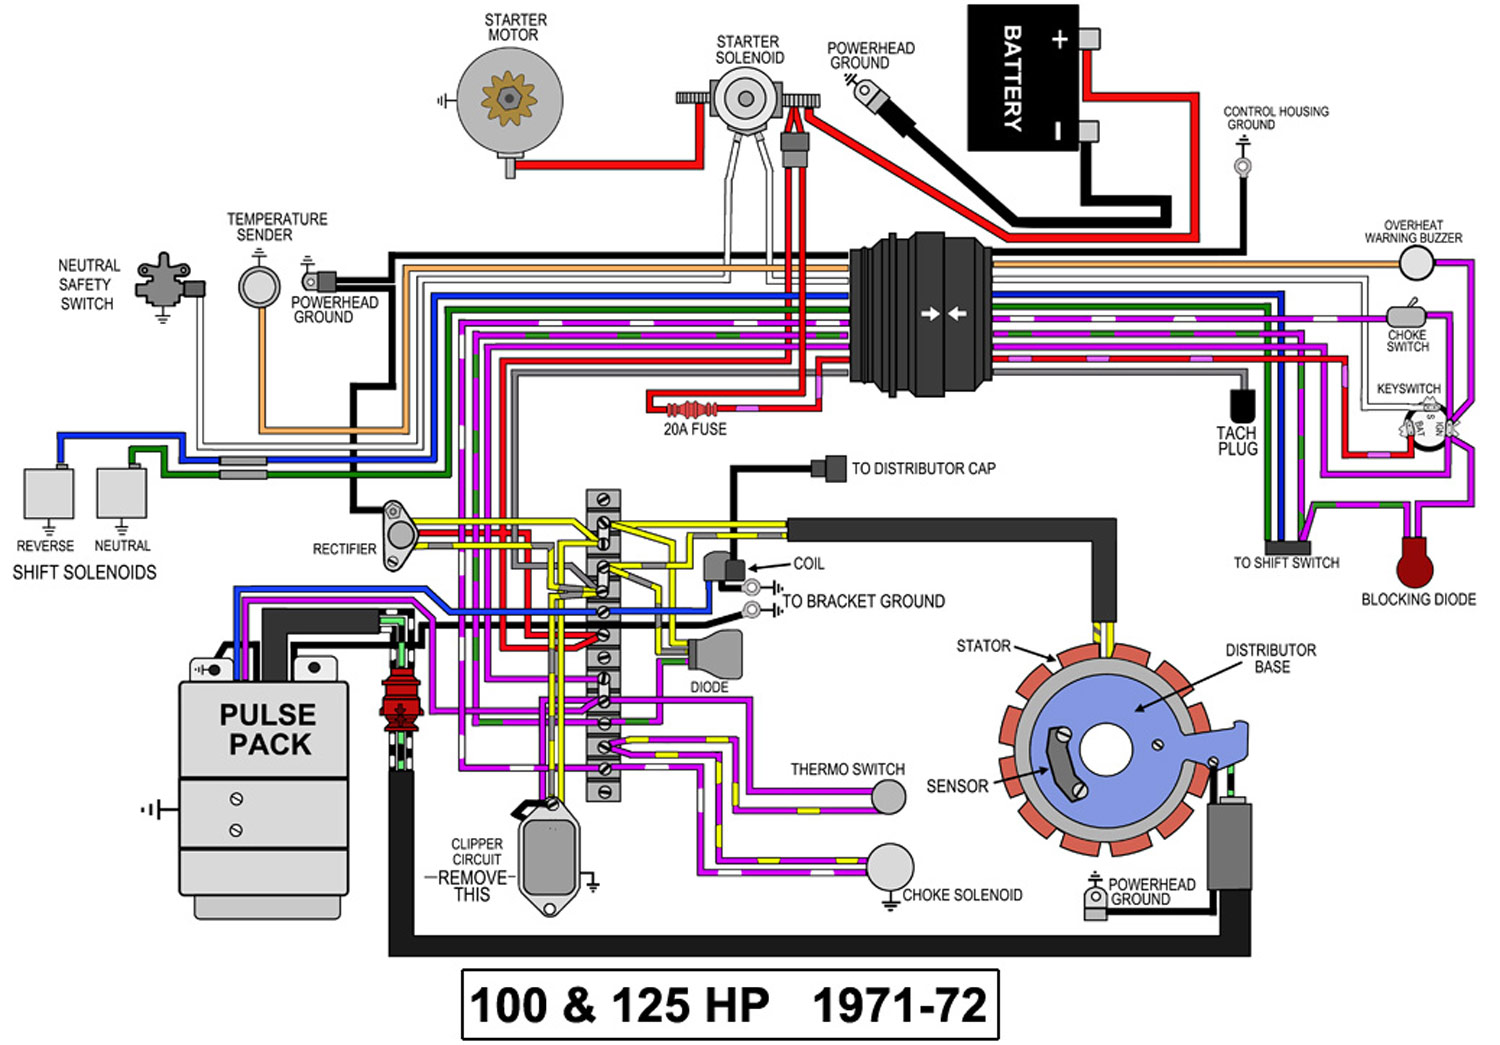 70 Hp Evinrude Outboard Motor Wiring Diagram Great Installation Of 96 Johnson Diagrams Mastertech Marine Rh Maxrules Com 40